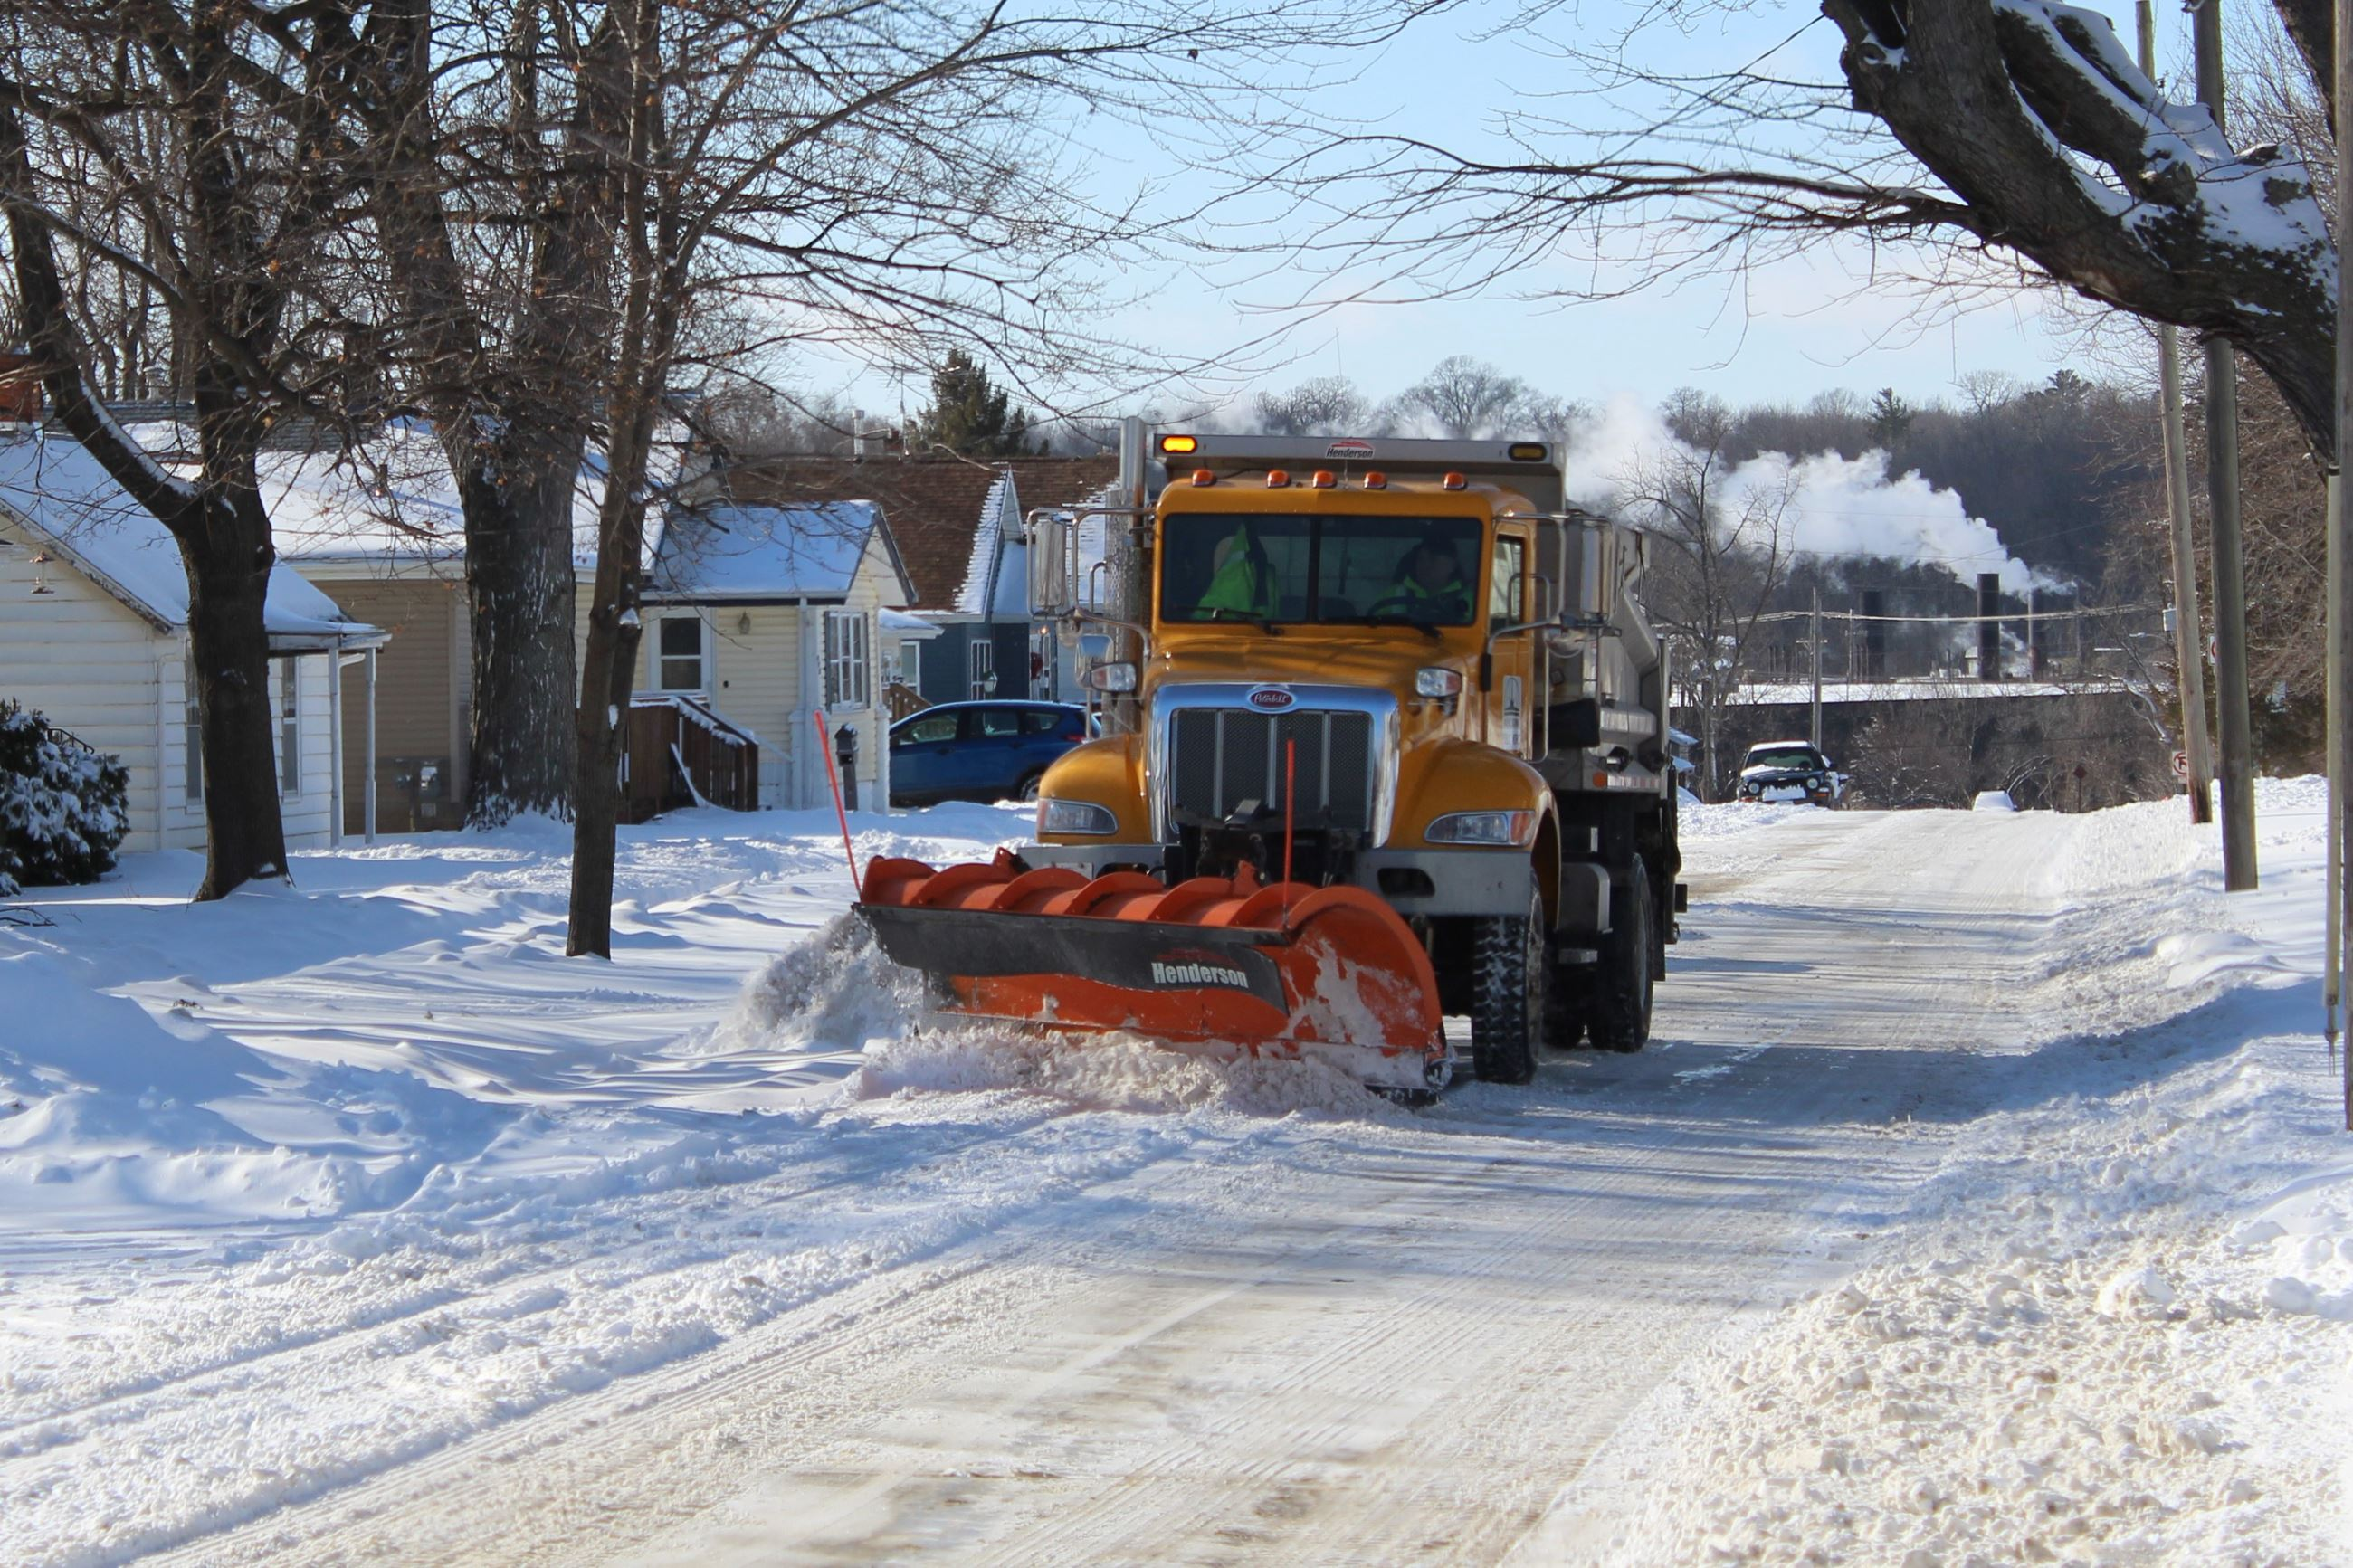 012621 Snow Removal - Residential Area 002 (JPG)